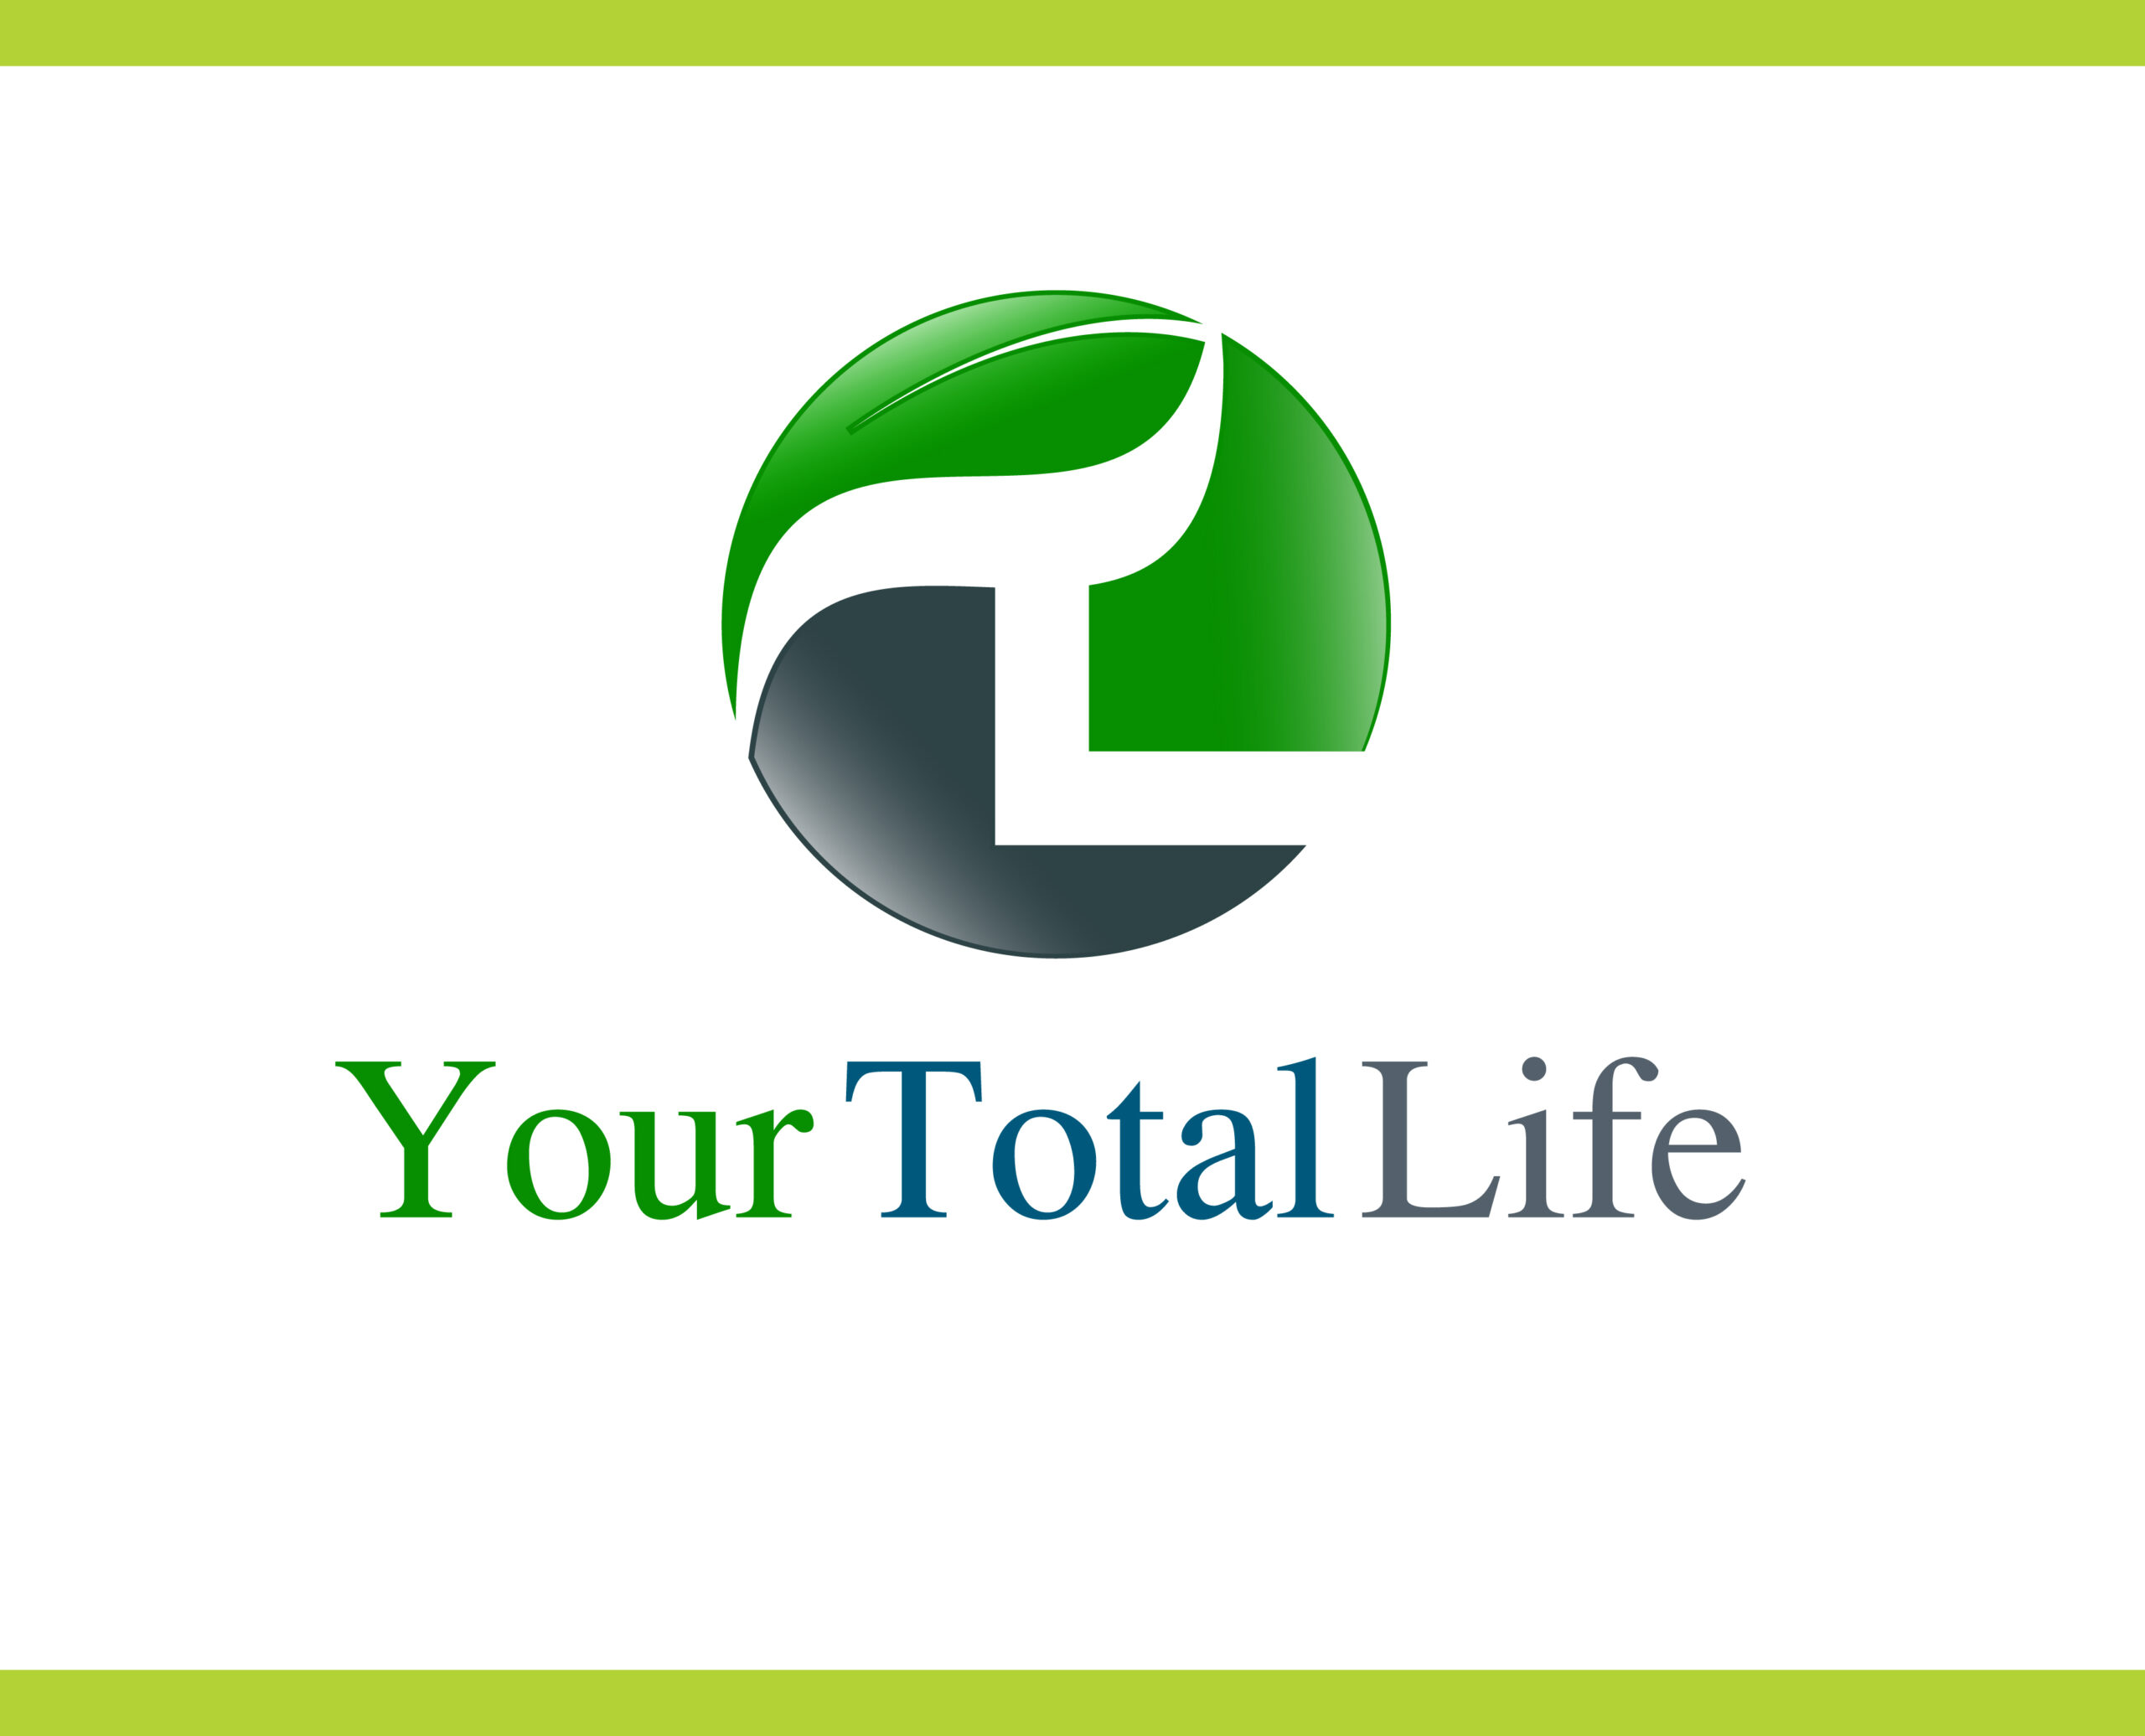 Your Total Life Best Custom Logo Design Template Vector Free Download